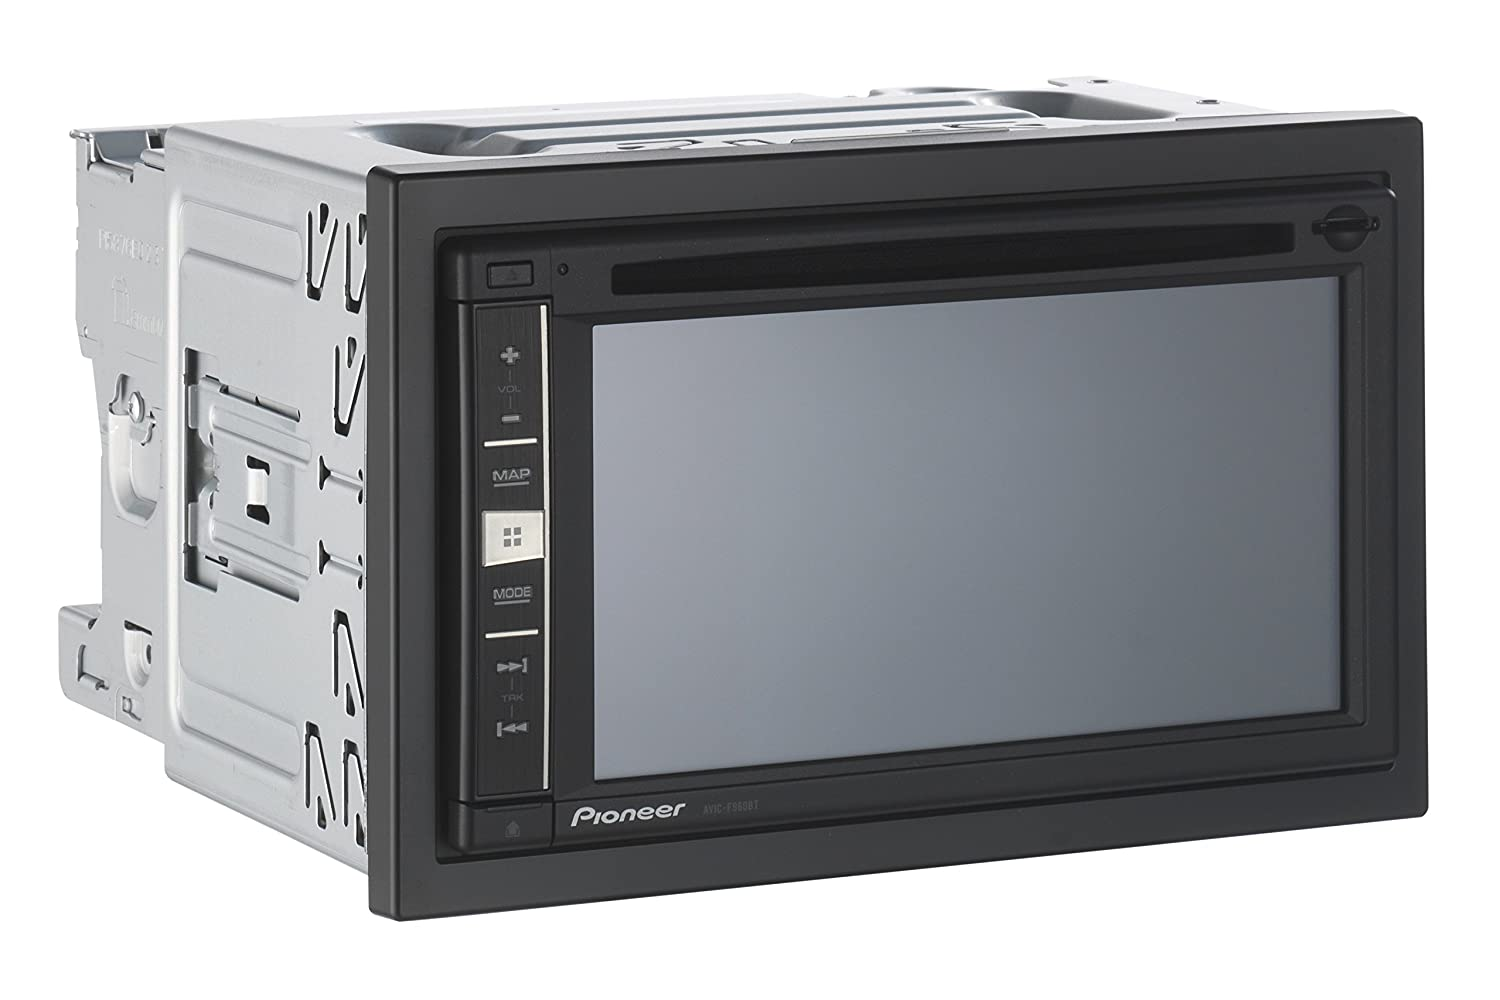 Pioneer AVIC-F960BT Receiver Driver for Windows 7